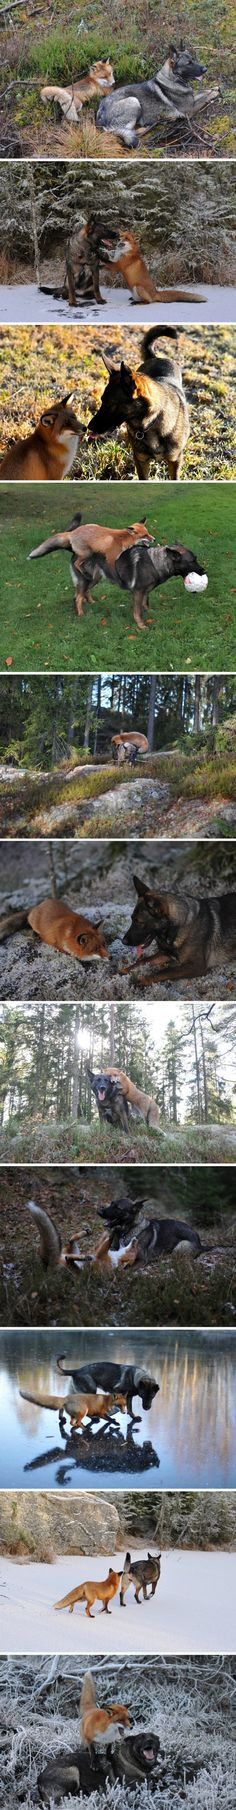 Real life fox and the hound.